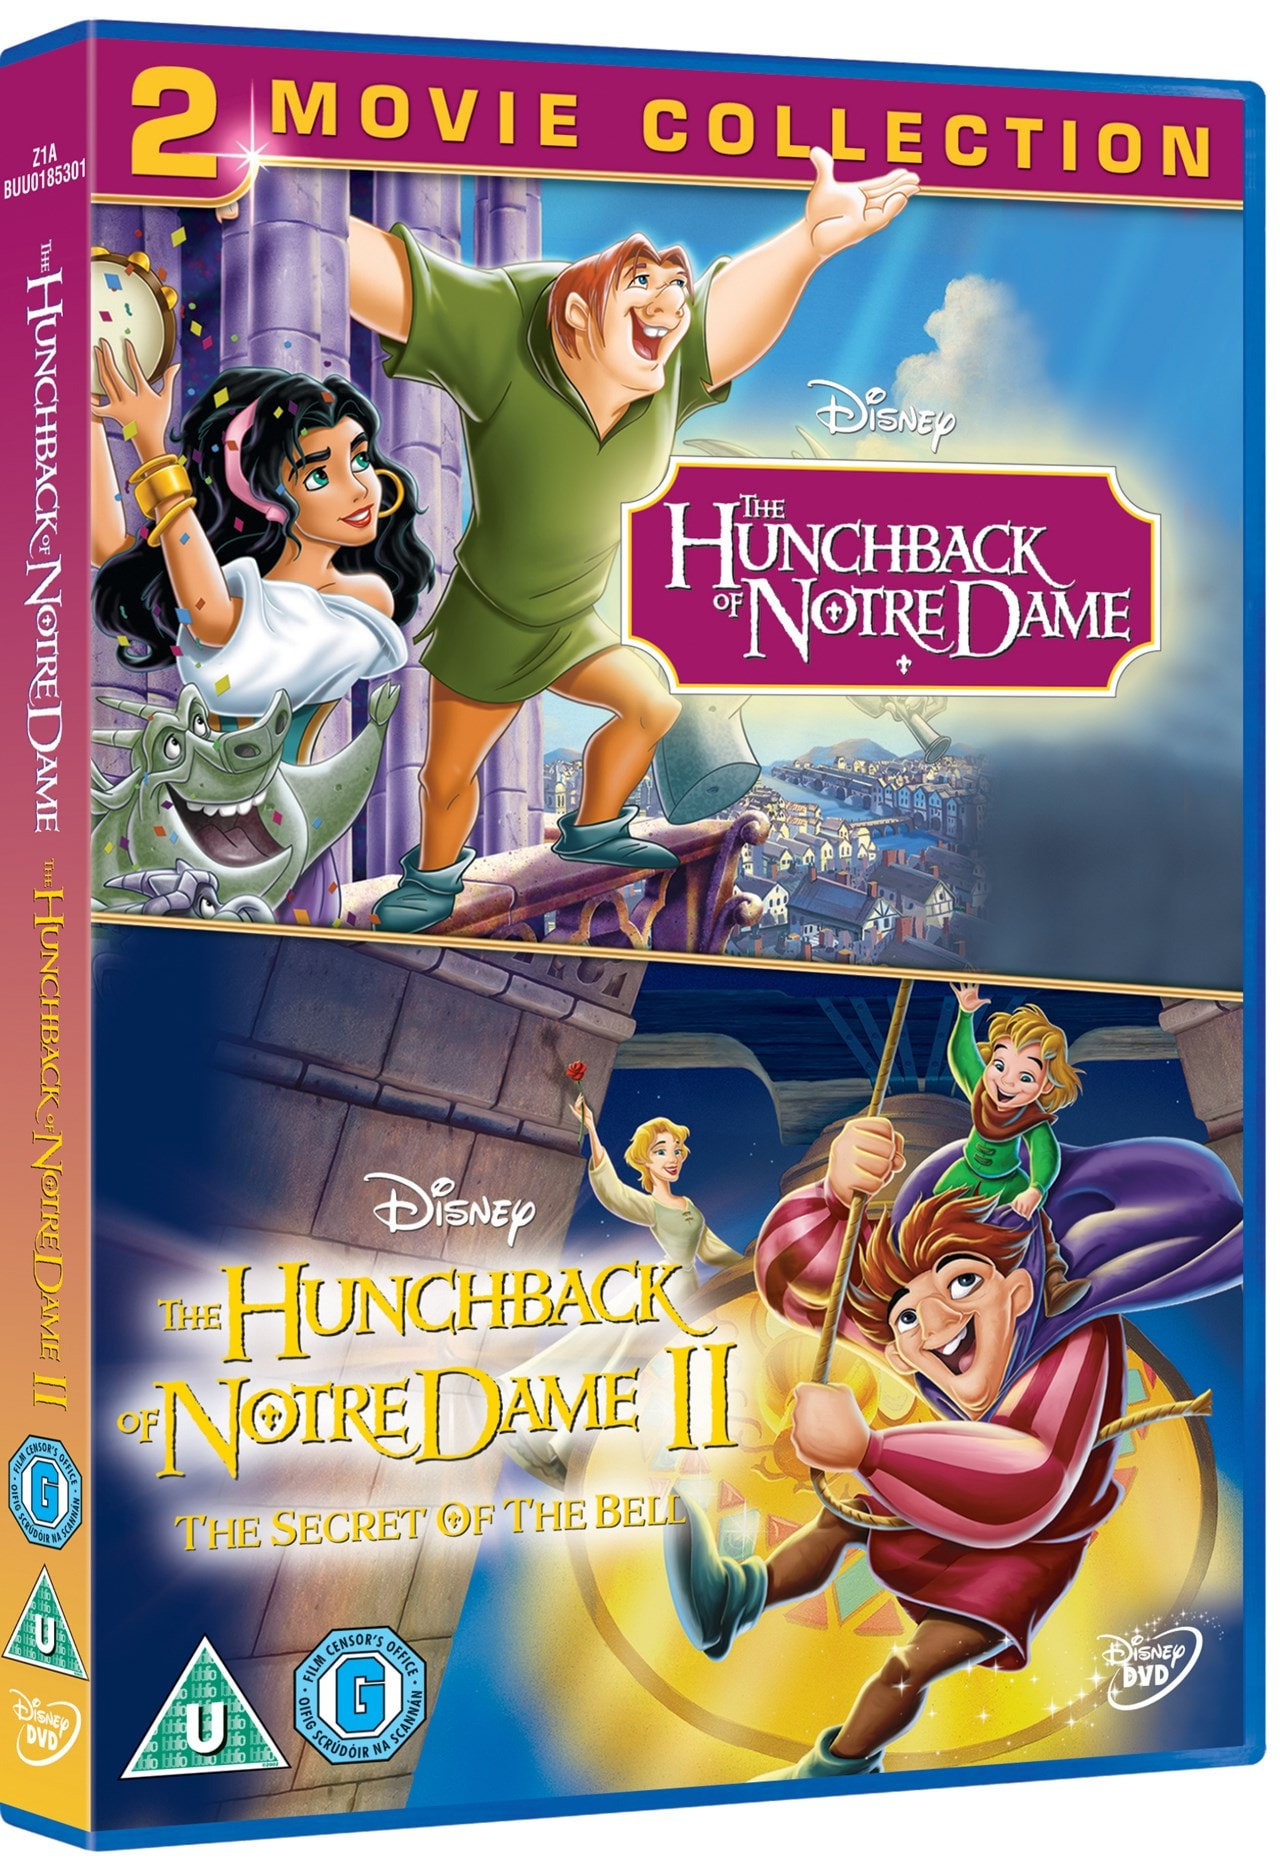 The Hunchback of Notre Dame: 2-movie Collection - 2